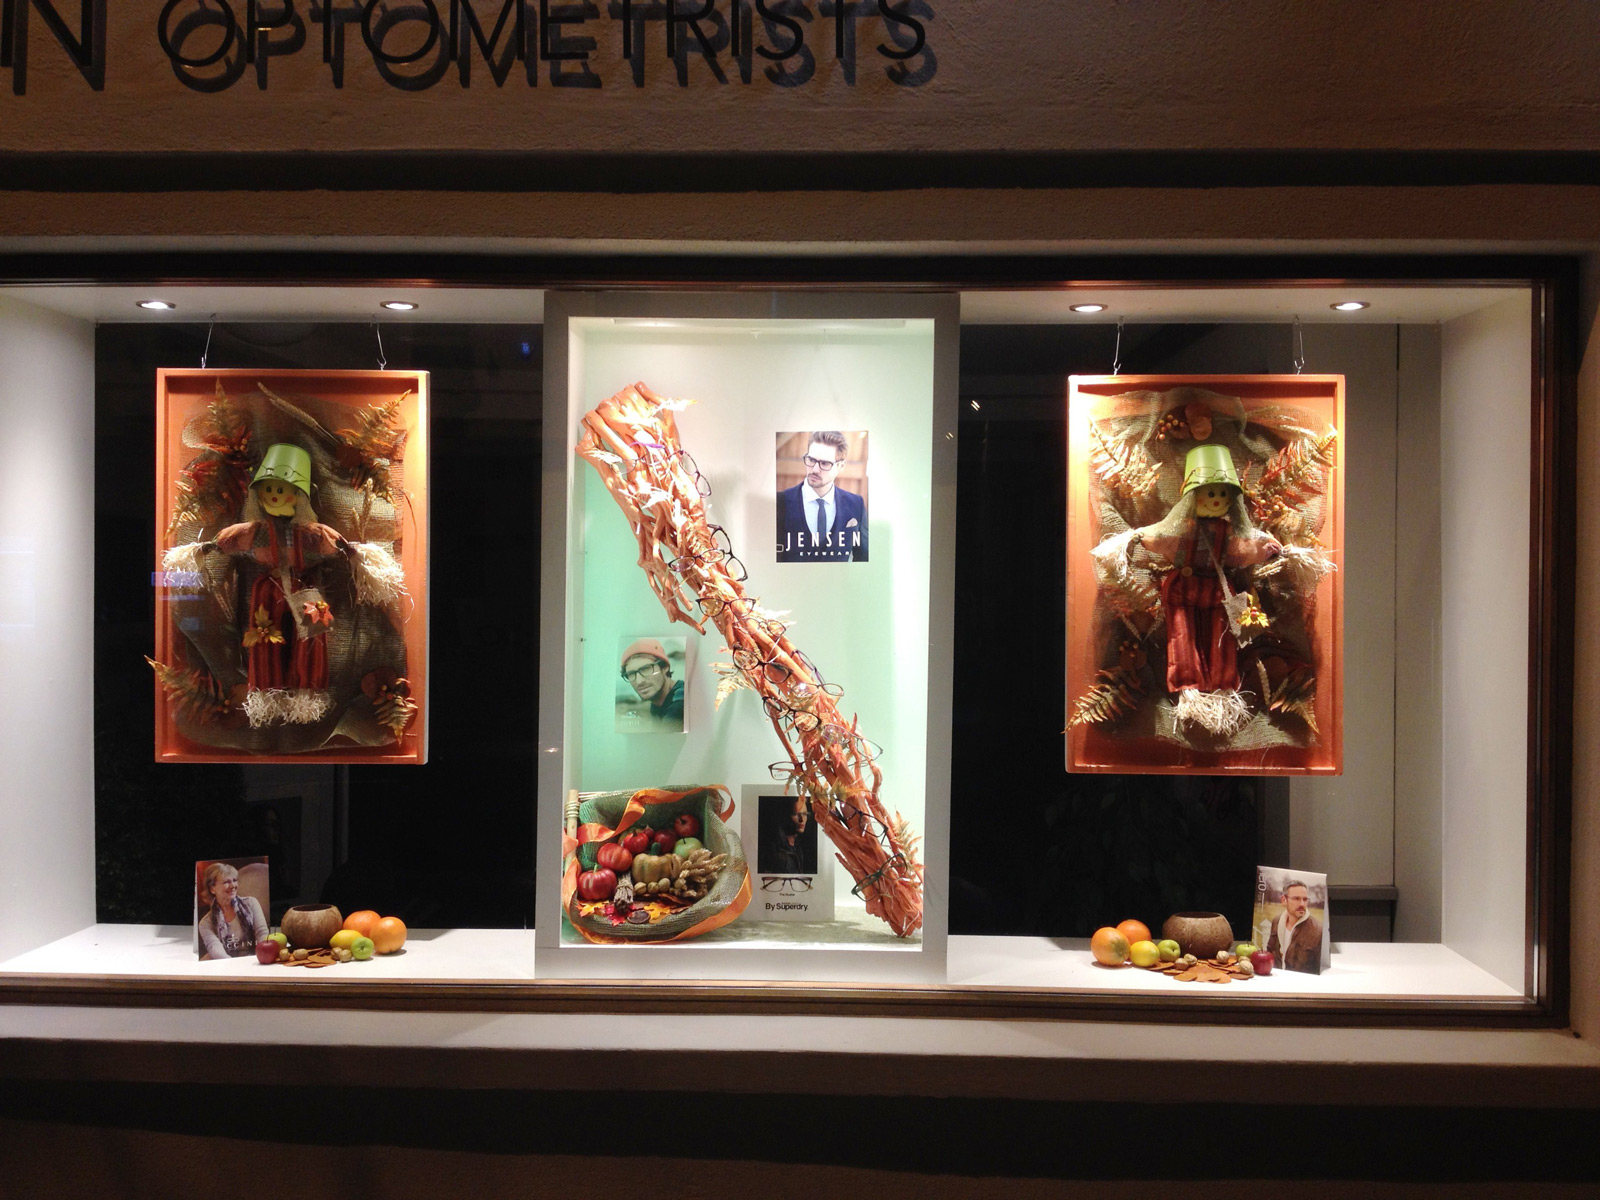 Framed puppets, brown shades and pumpkins marked this autumn window display.